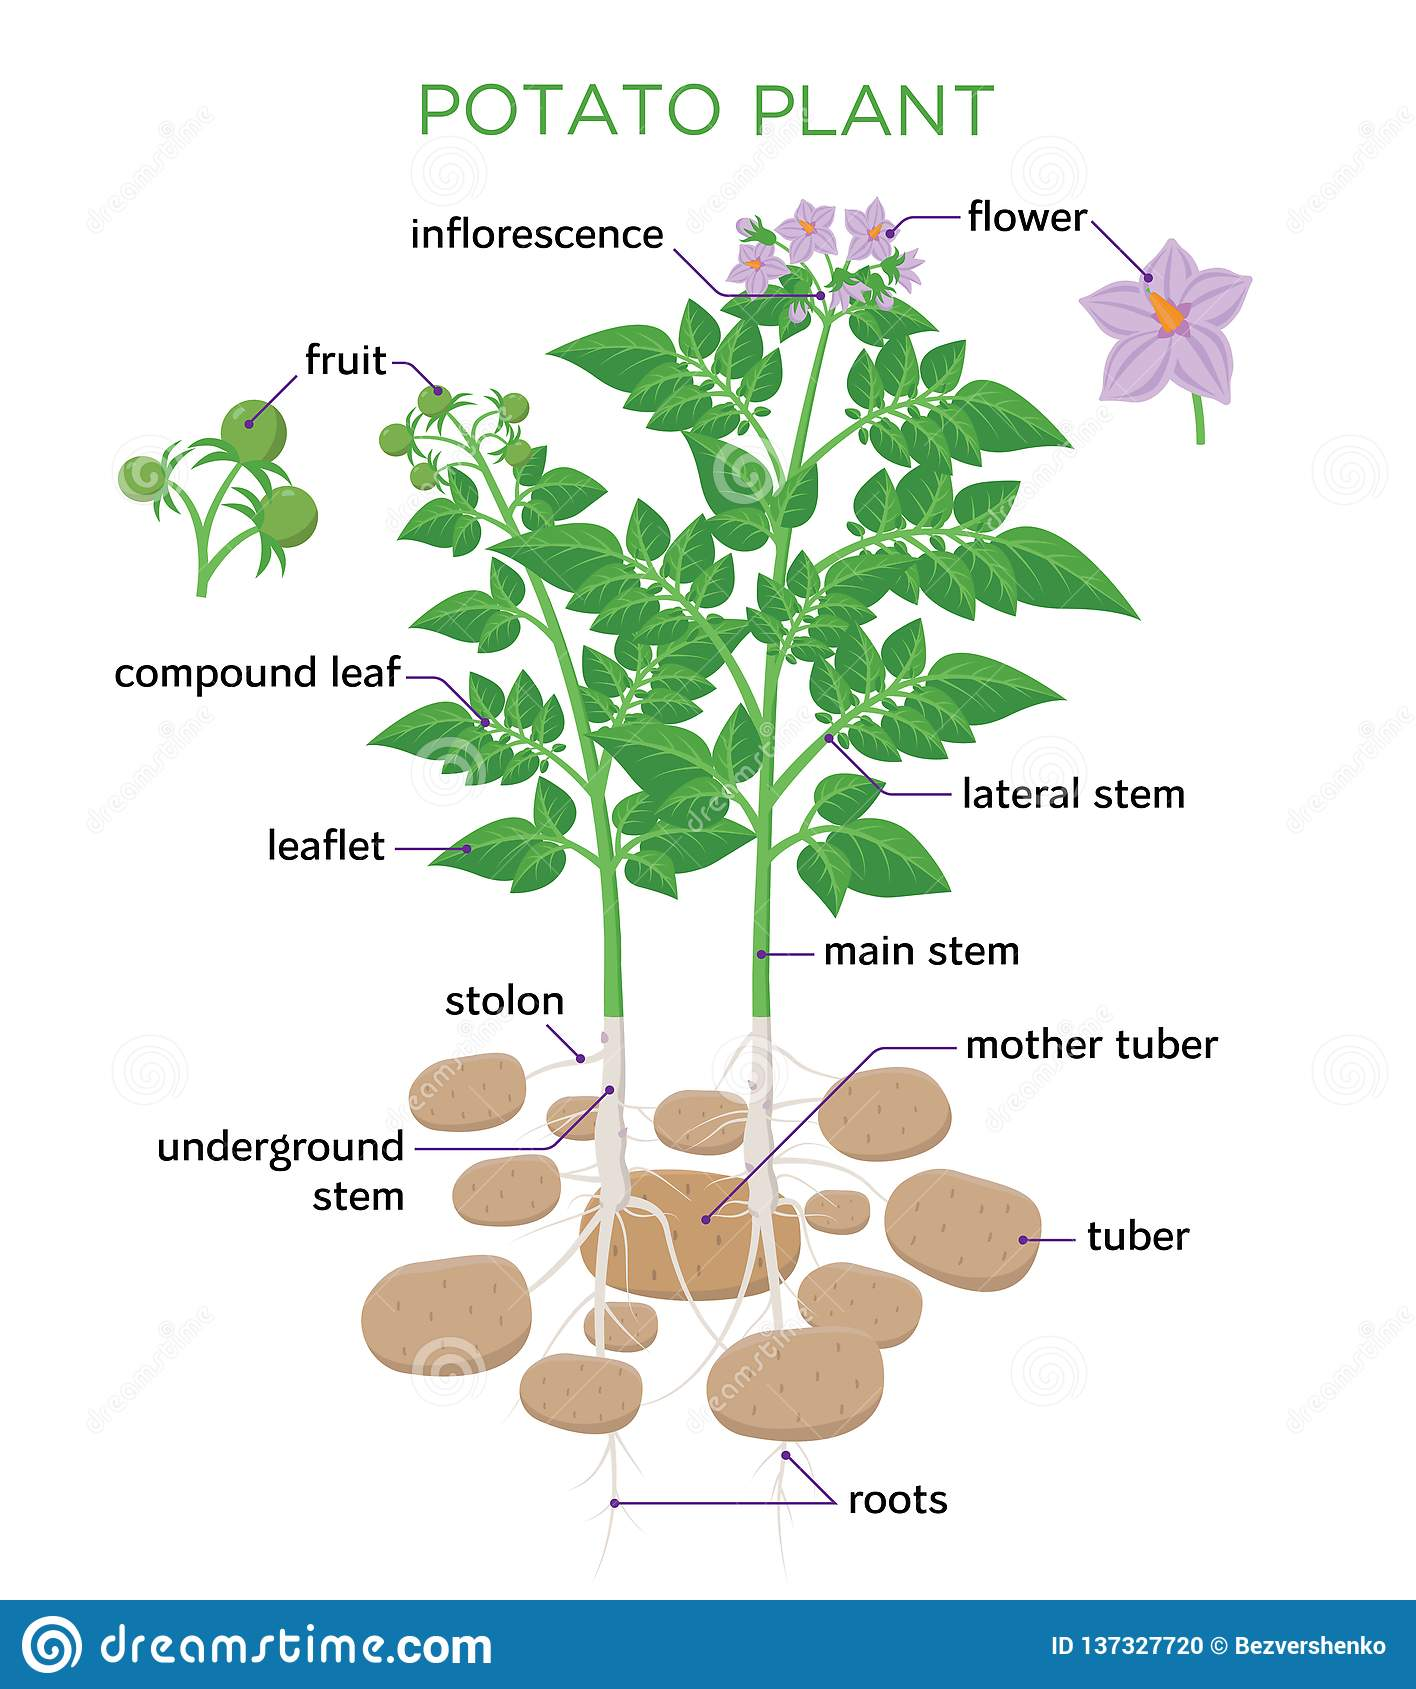 hight resolution of potato plant vector illustration in flat design potato growth diagram with parts of plant tubers stem roots flowers seeds isolated on white background